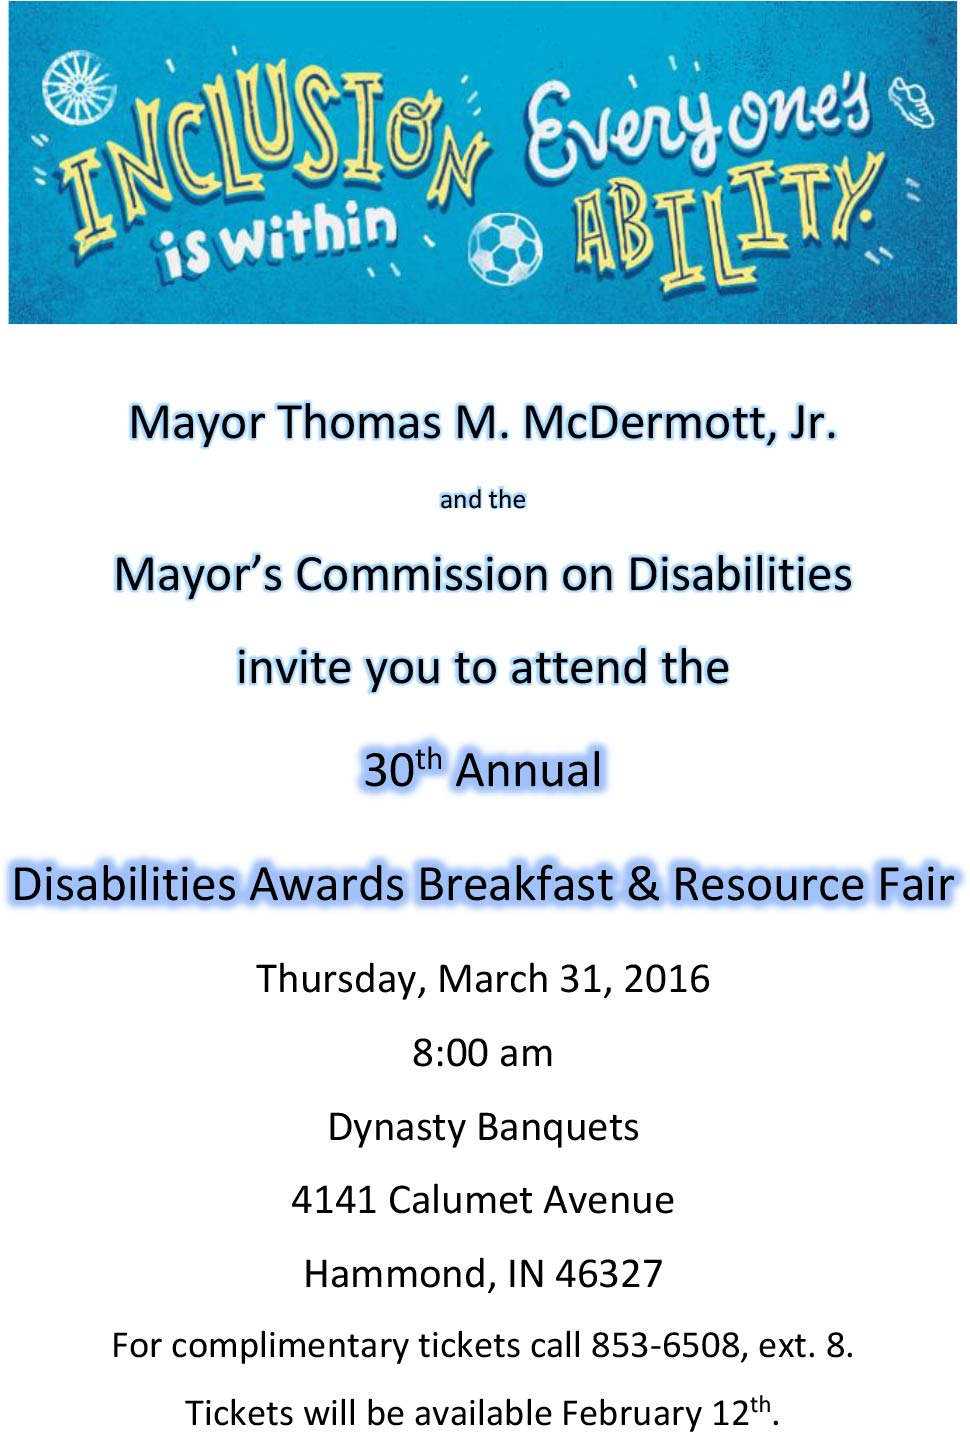 30th Annual Disabilities Awards Breakfast and Resource Fair